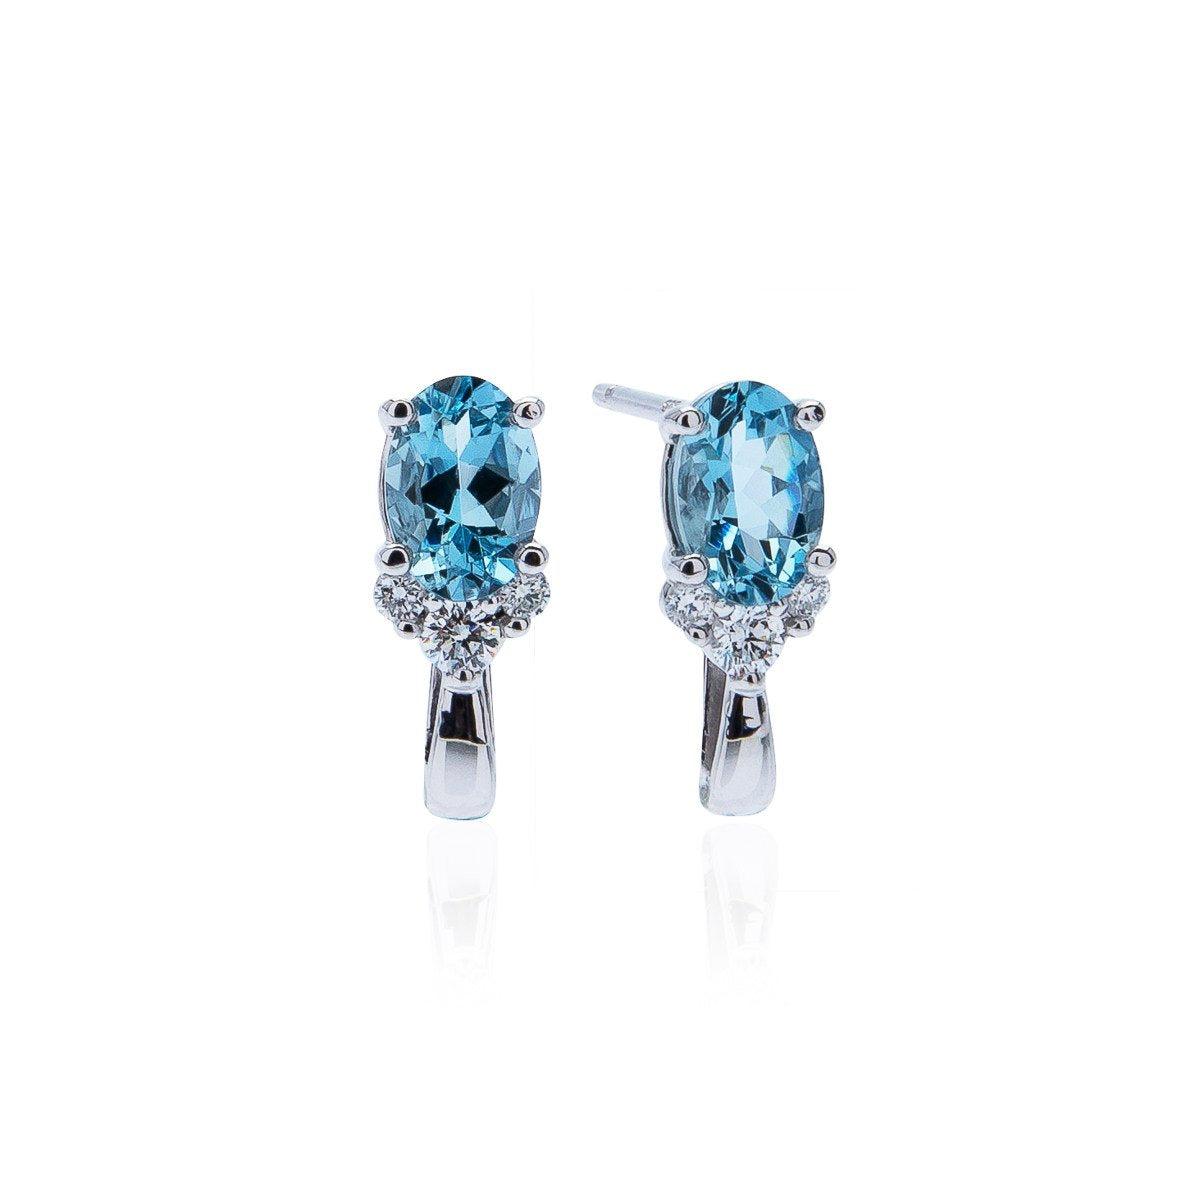 Sabel Collection 14K White Gold Oval Aquamarine and Diamond Cluster Earrings